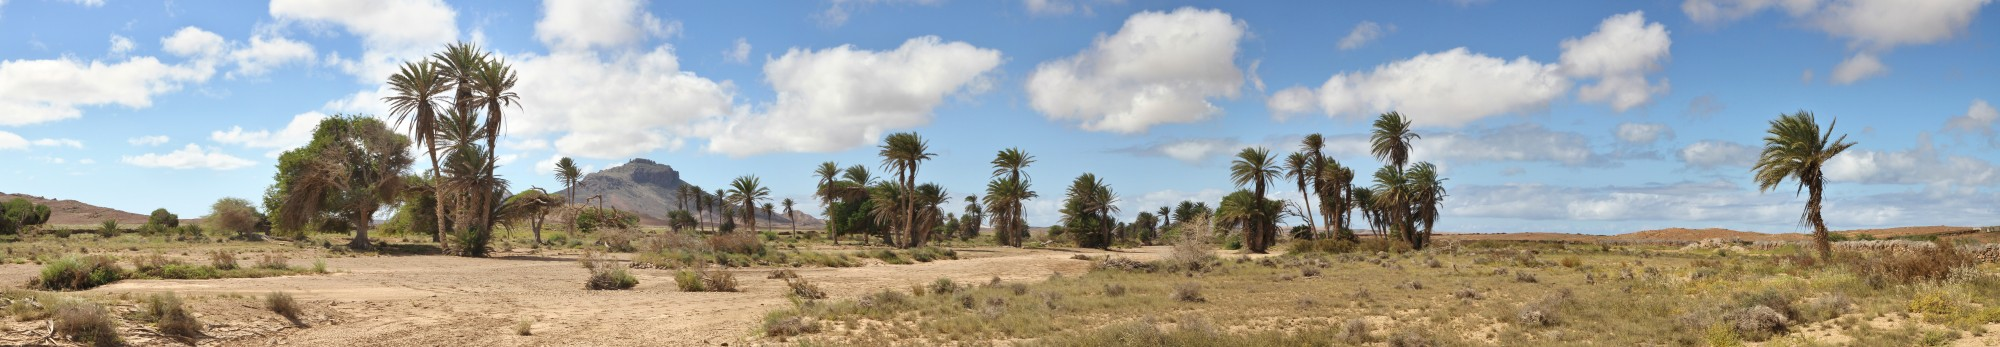 Panoramic view of an oasis like area in central western Boa Vista, 2010 12